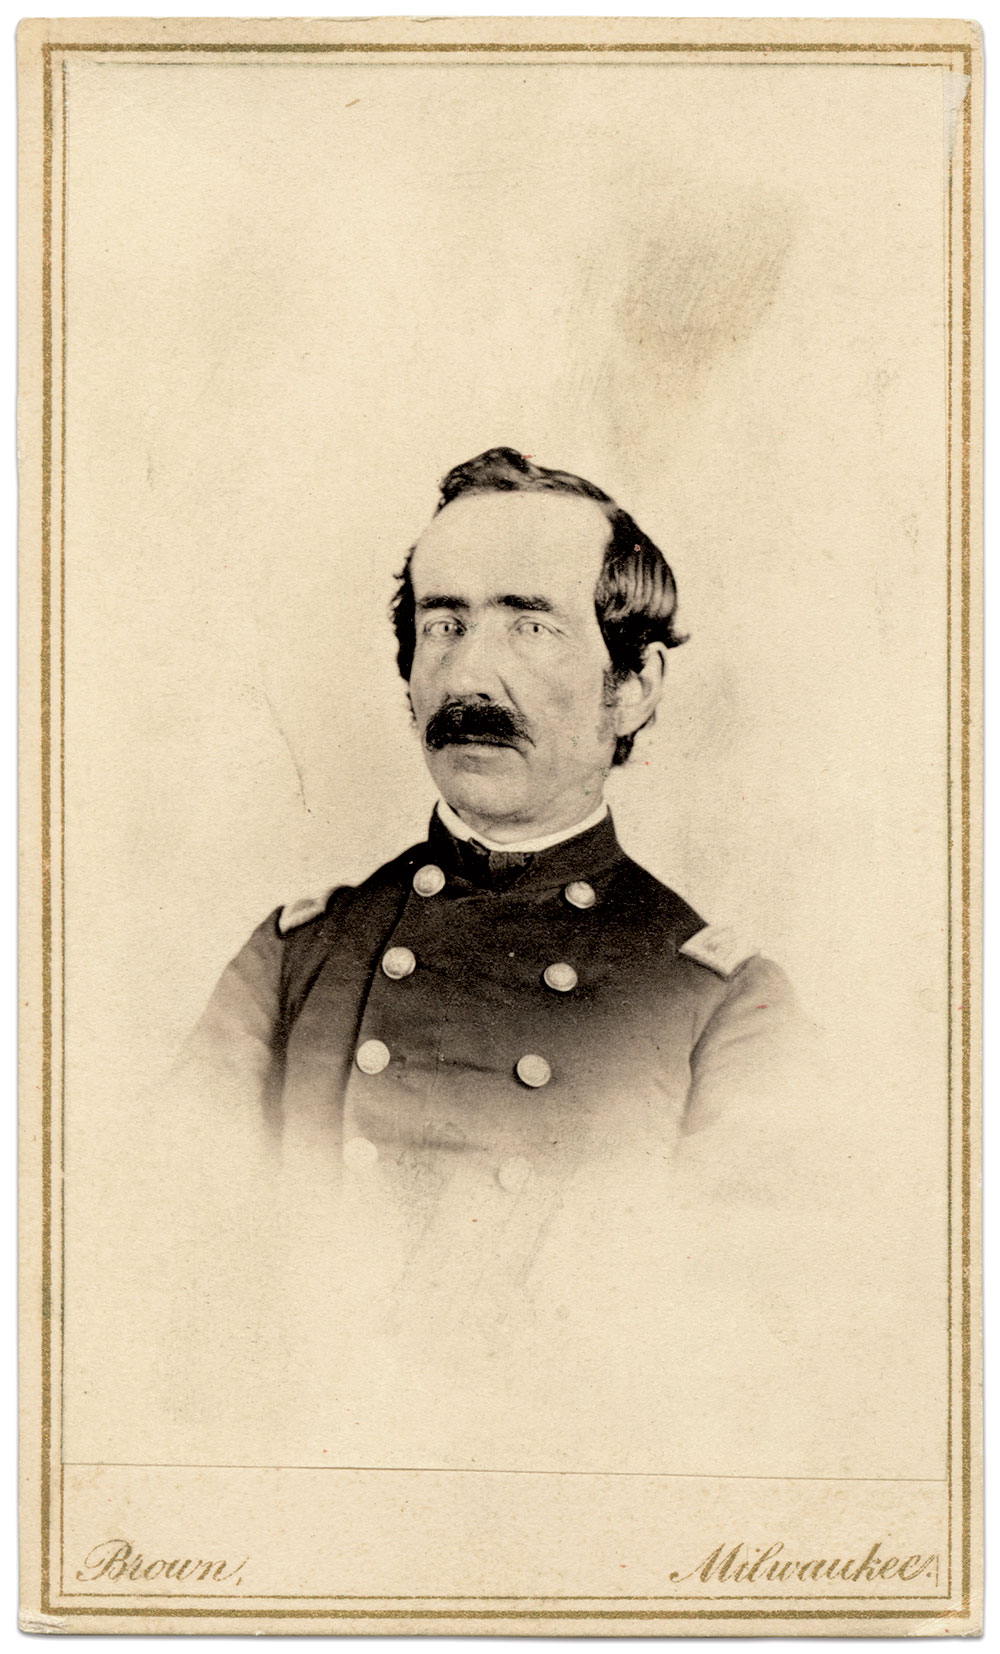 Carte de visite by H.S. Brown of Milwaukee, Wis. Jim Rivest Collection.